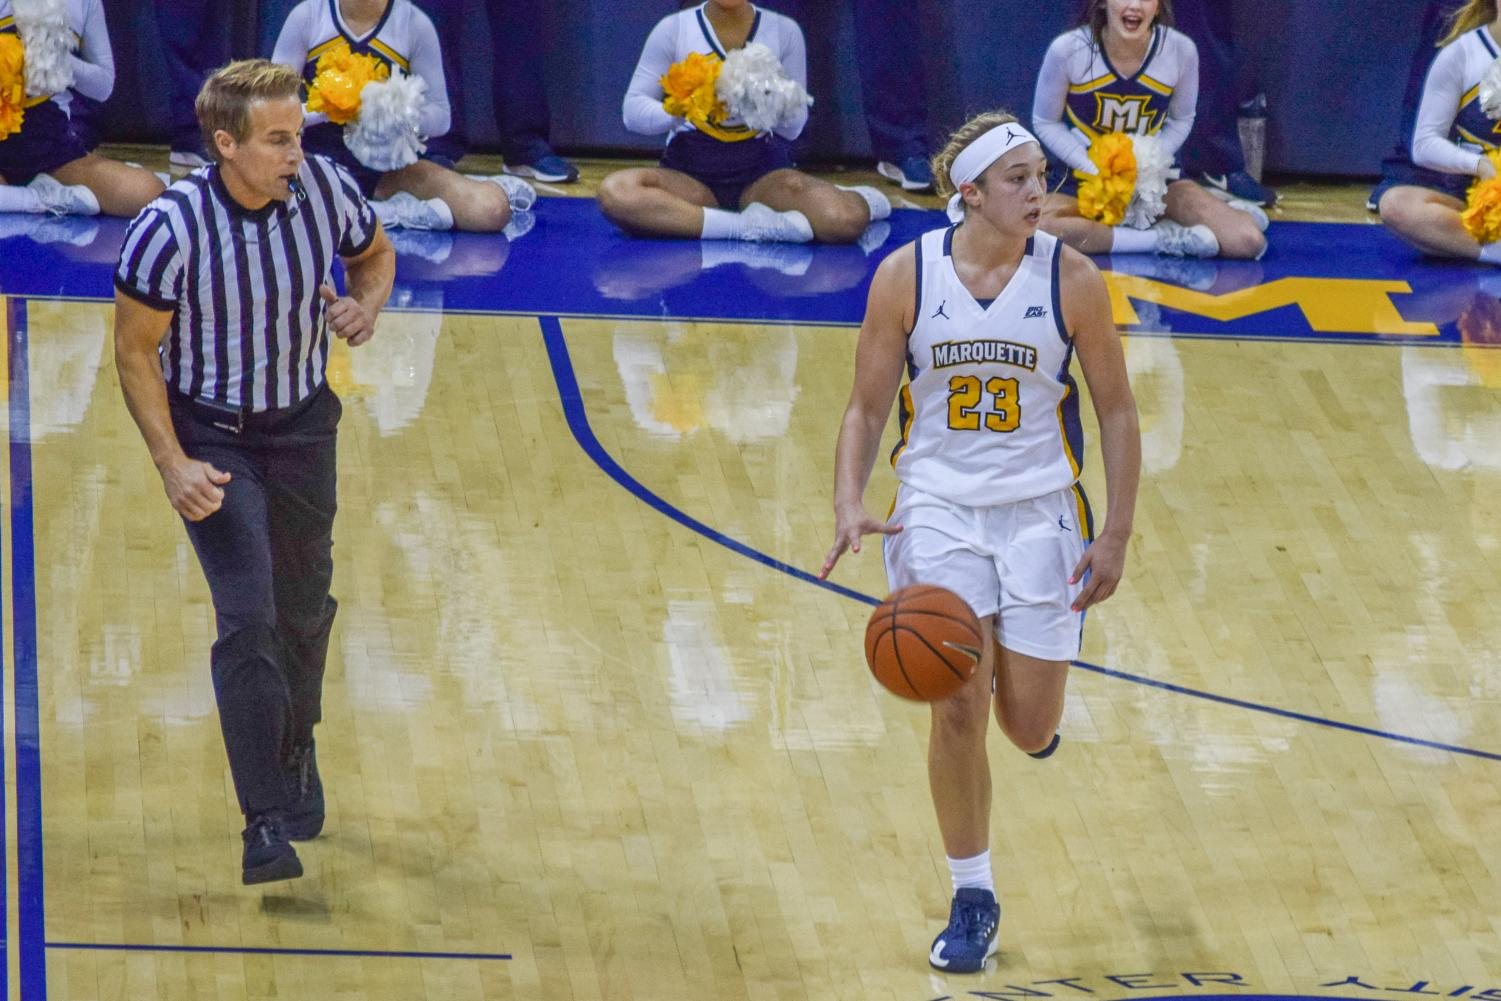 Jordan King brings the ball up in Marquette's 93-47 exhibition win against Winona State.